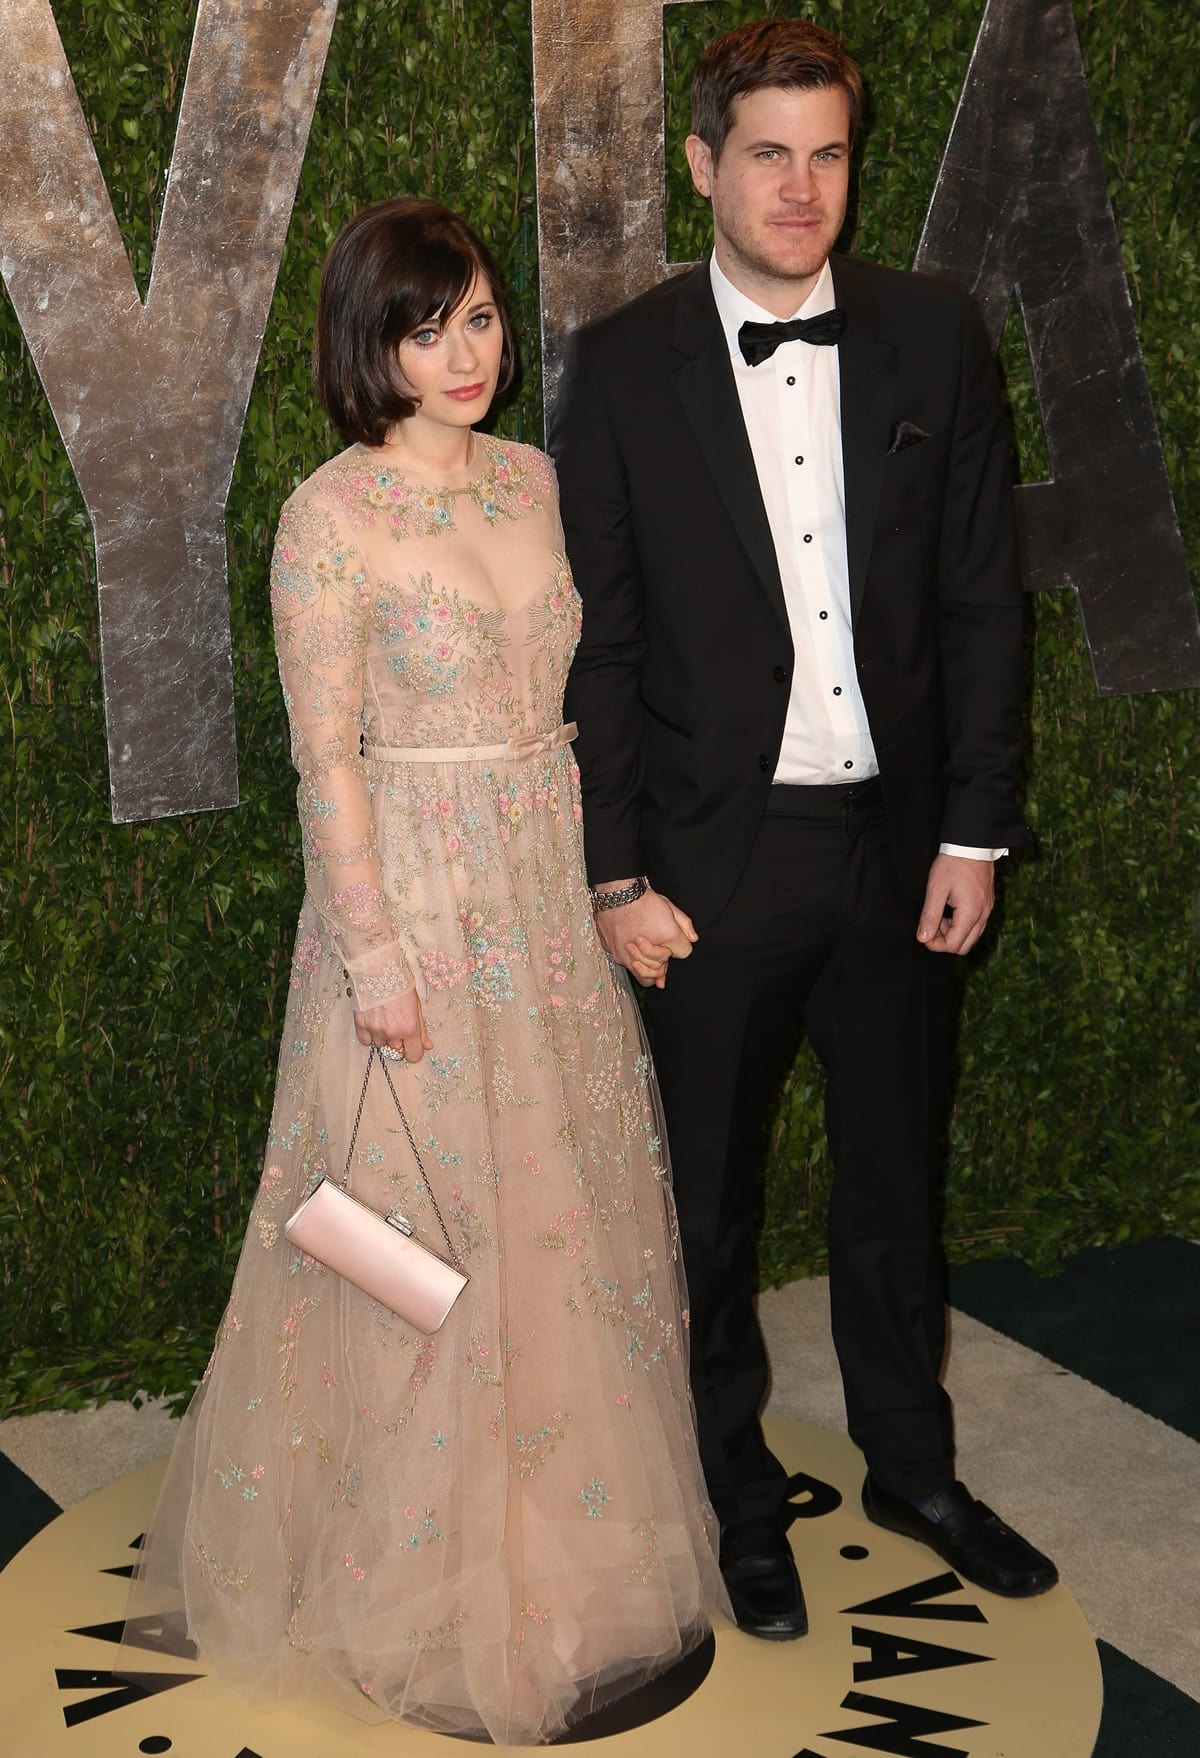 Pictured at the 2013 Vanity Fair Oscar Party, Zooey Deschanel and Jamie Linden were in a relationship between 2012 and 2014